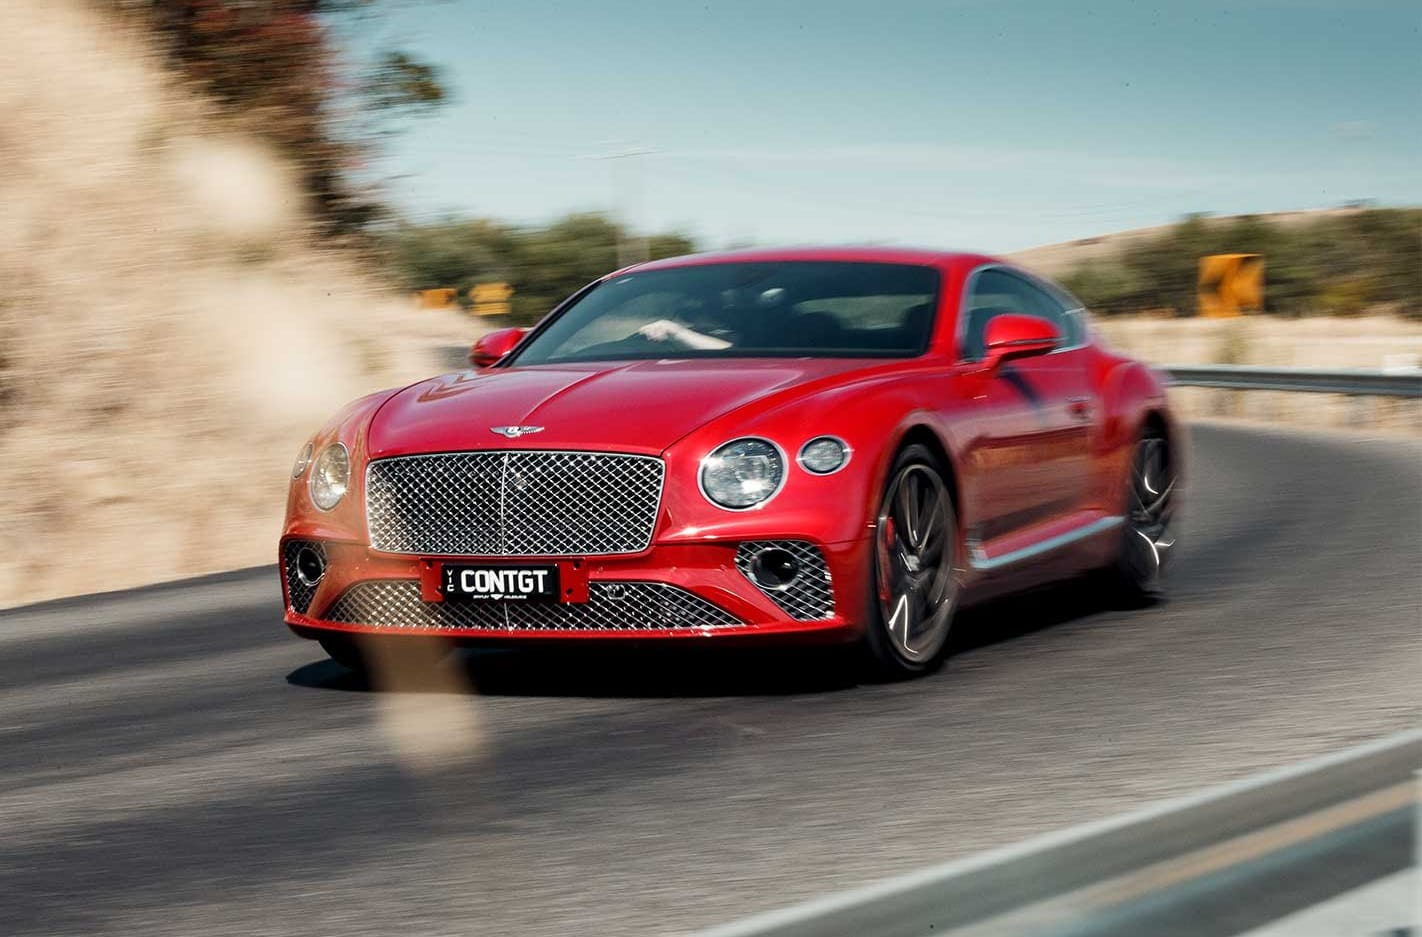 2019 Bentley Continental GT performance review